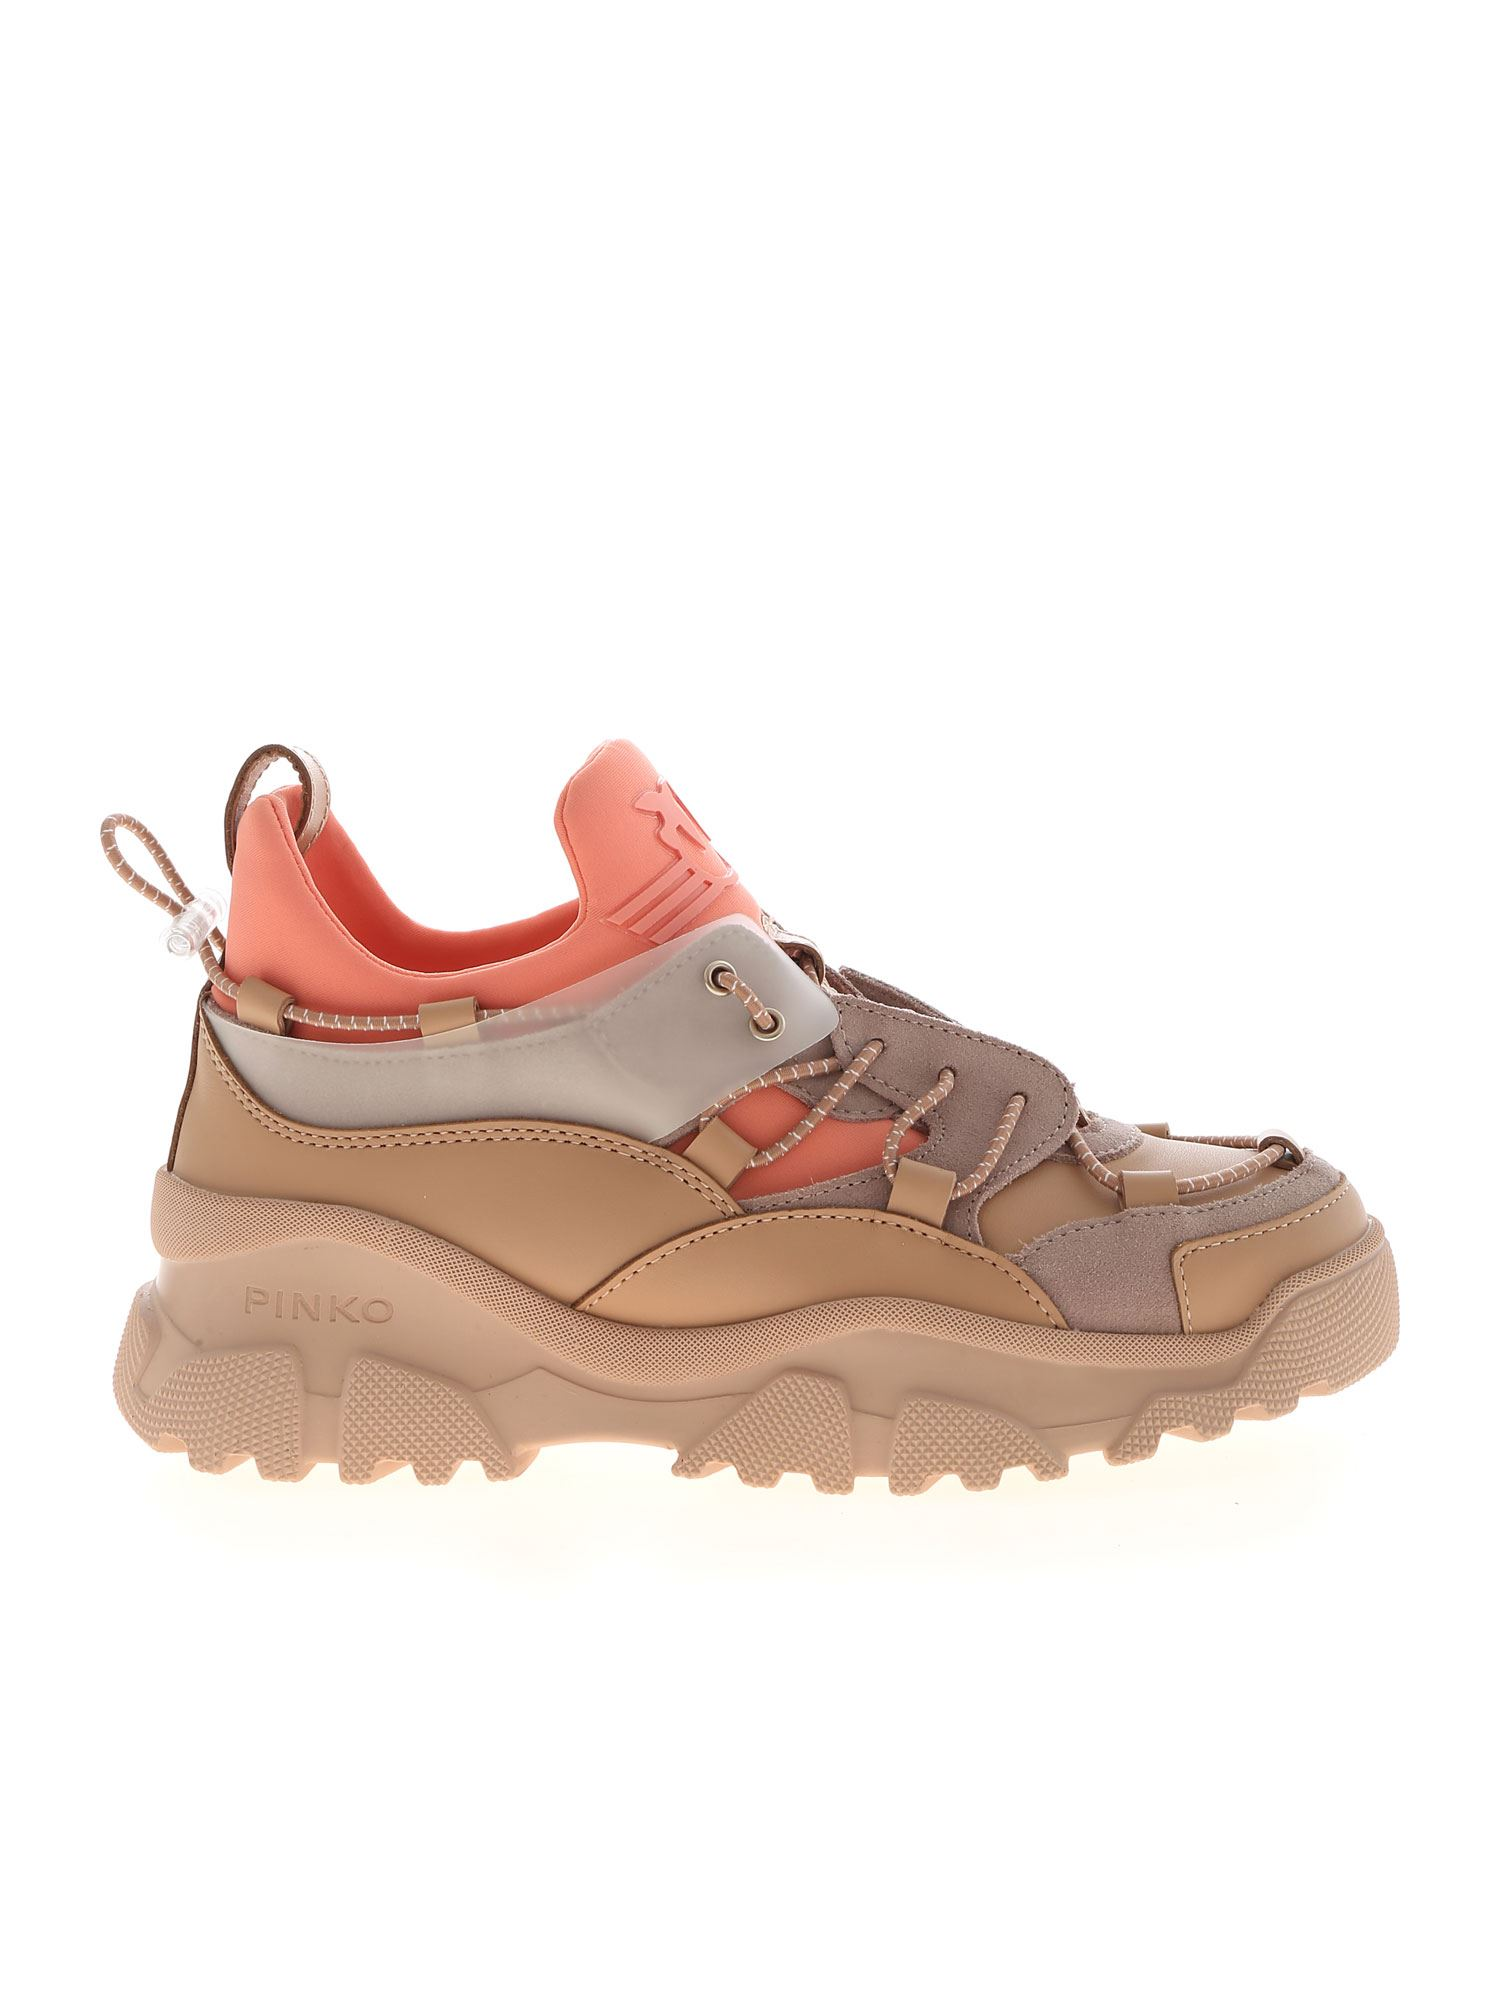 Pinko PINKO CUMINO SNEAKERS IN SHADES OF PINK